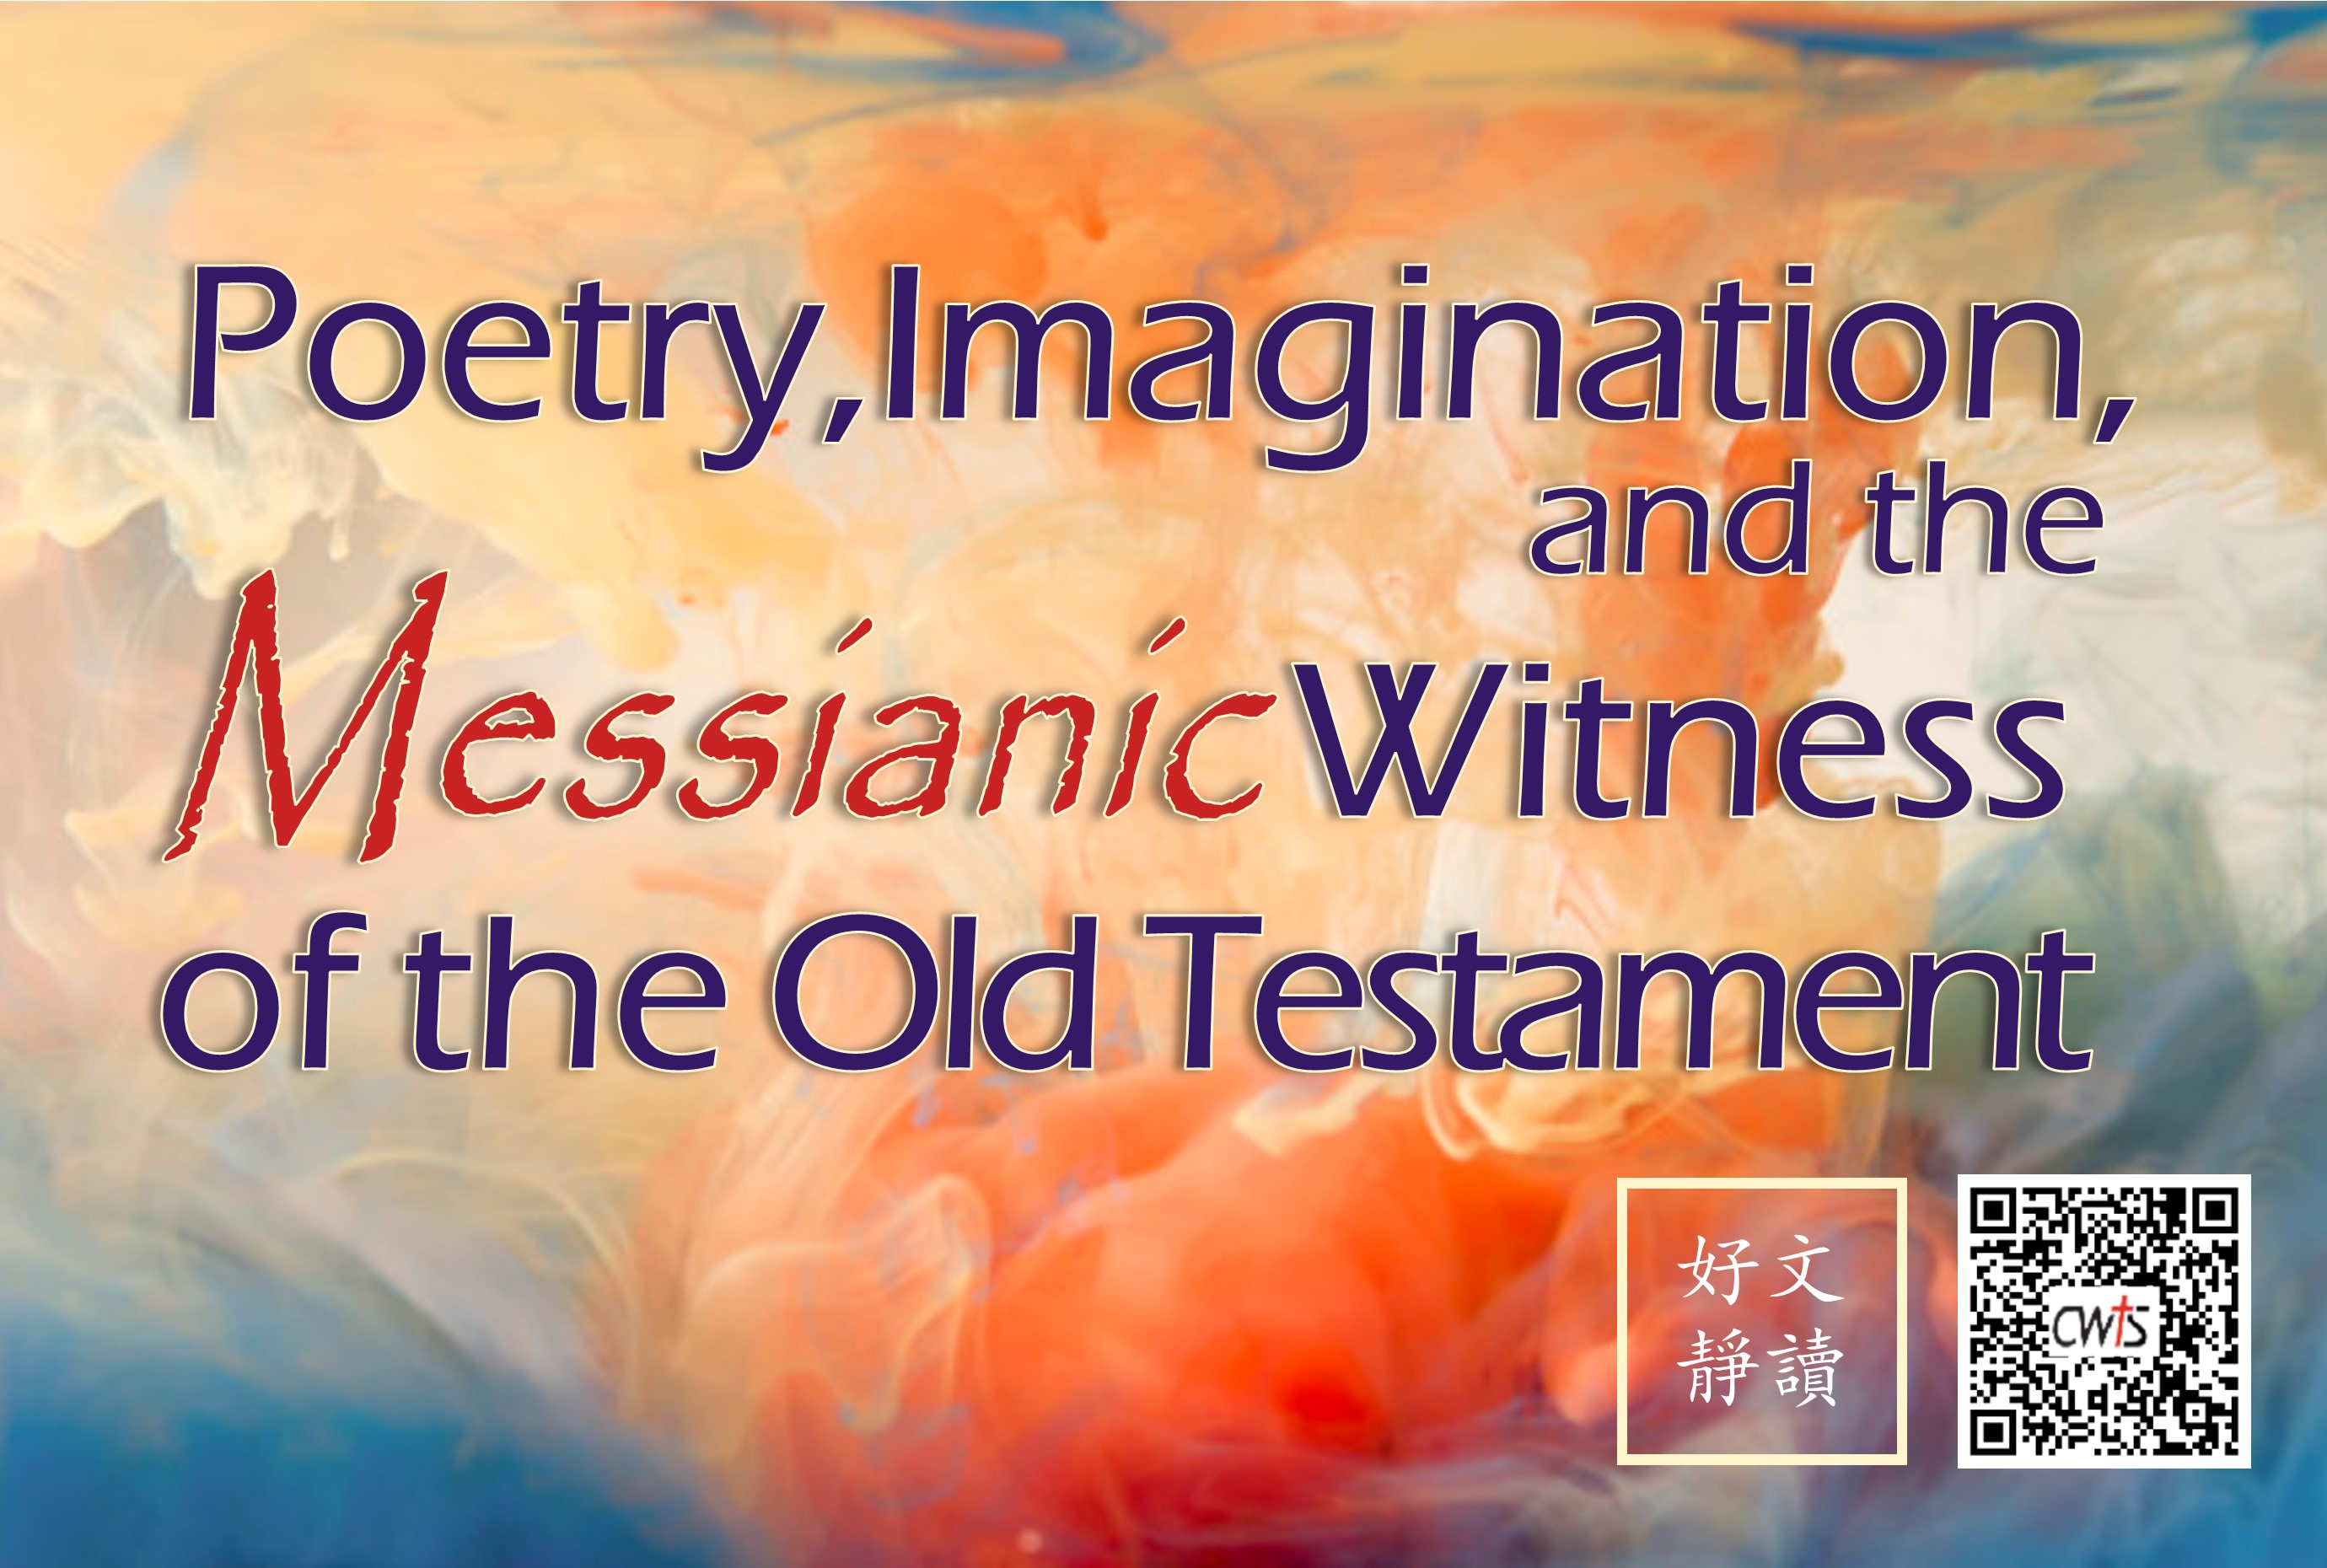 Poetry, Imagination, and the Messianic Witness of the Old Testament/